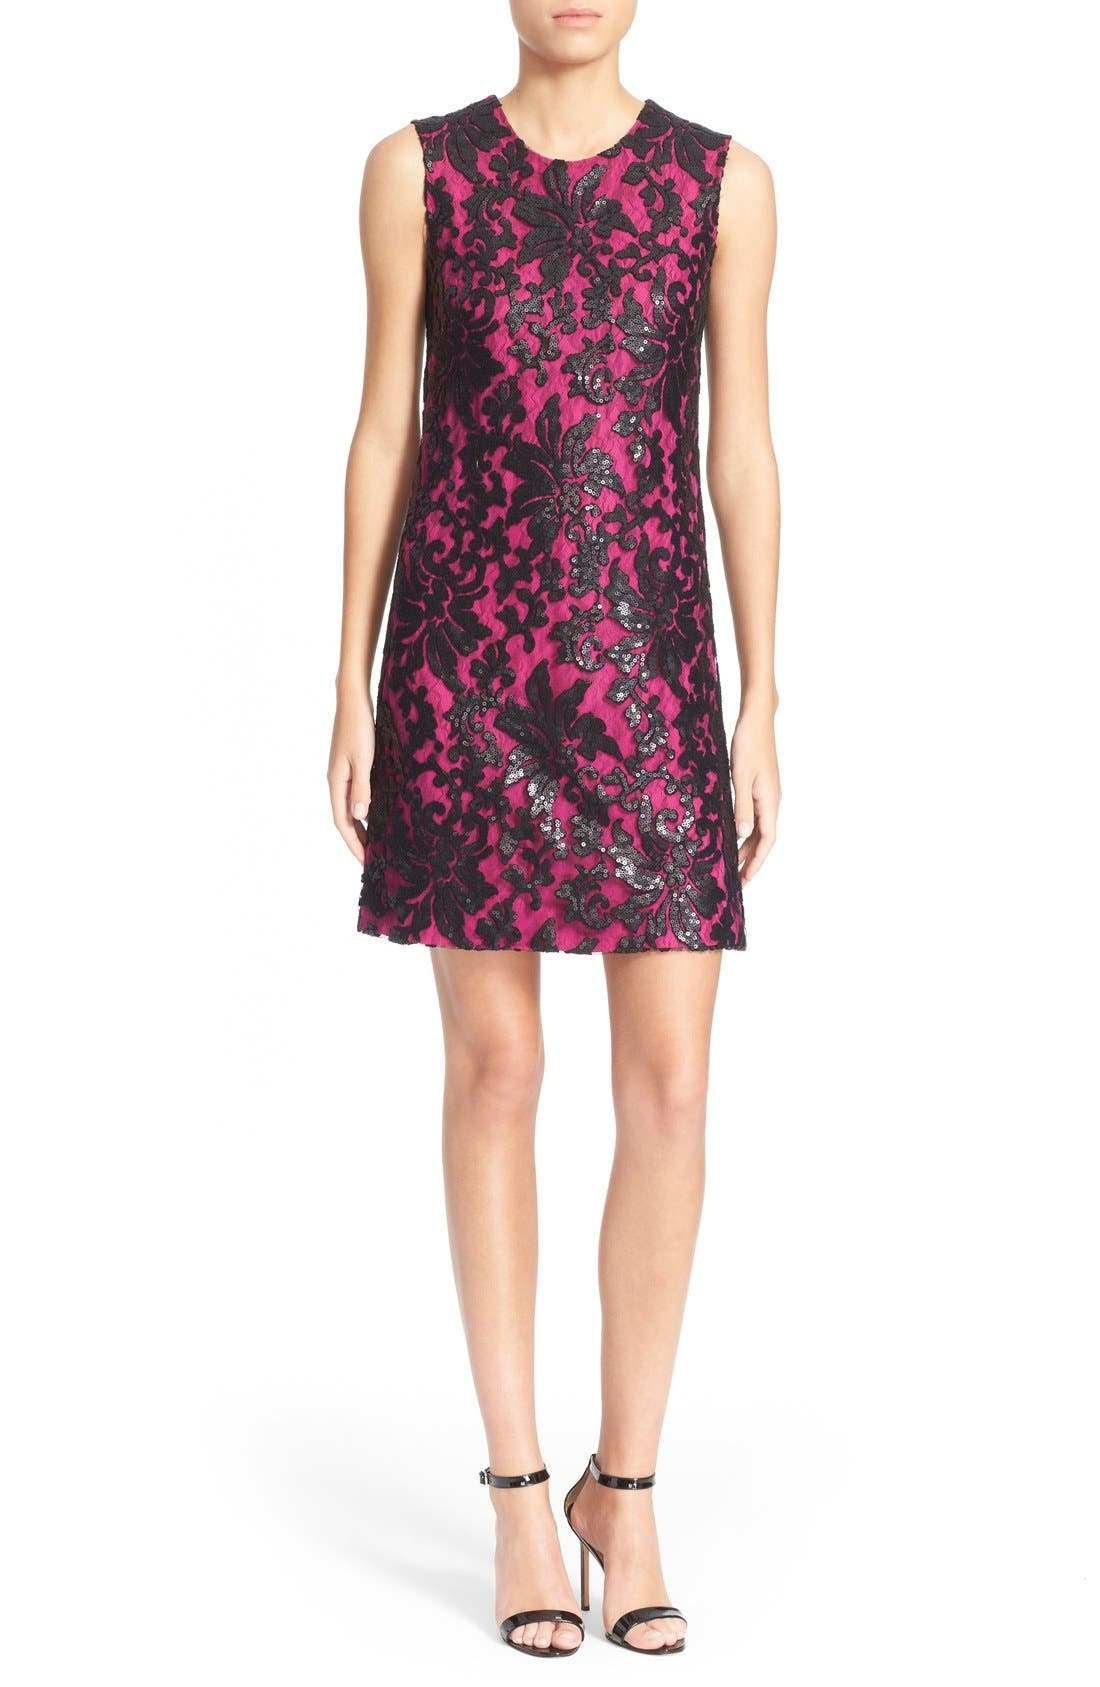 Alternate Image 1 Selected - Diane von Furstenberg 'Kaleb' Embellished Lace Sheath Dress